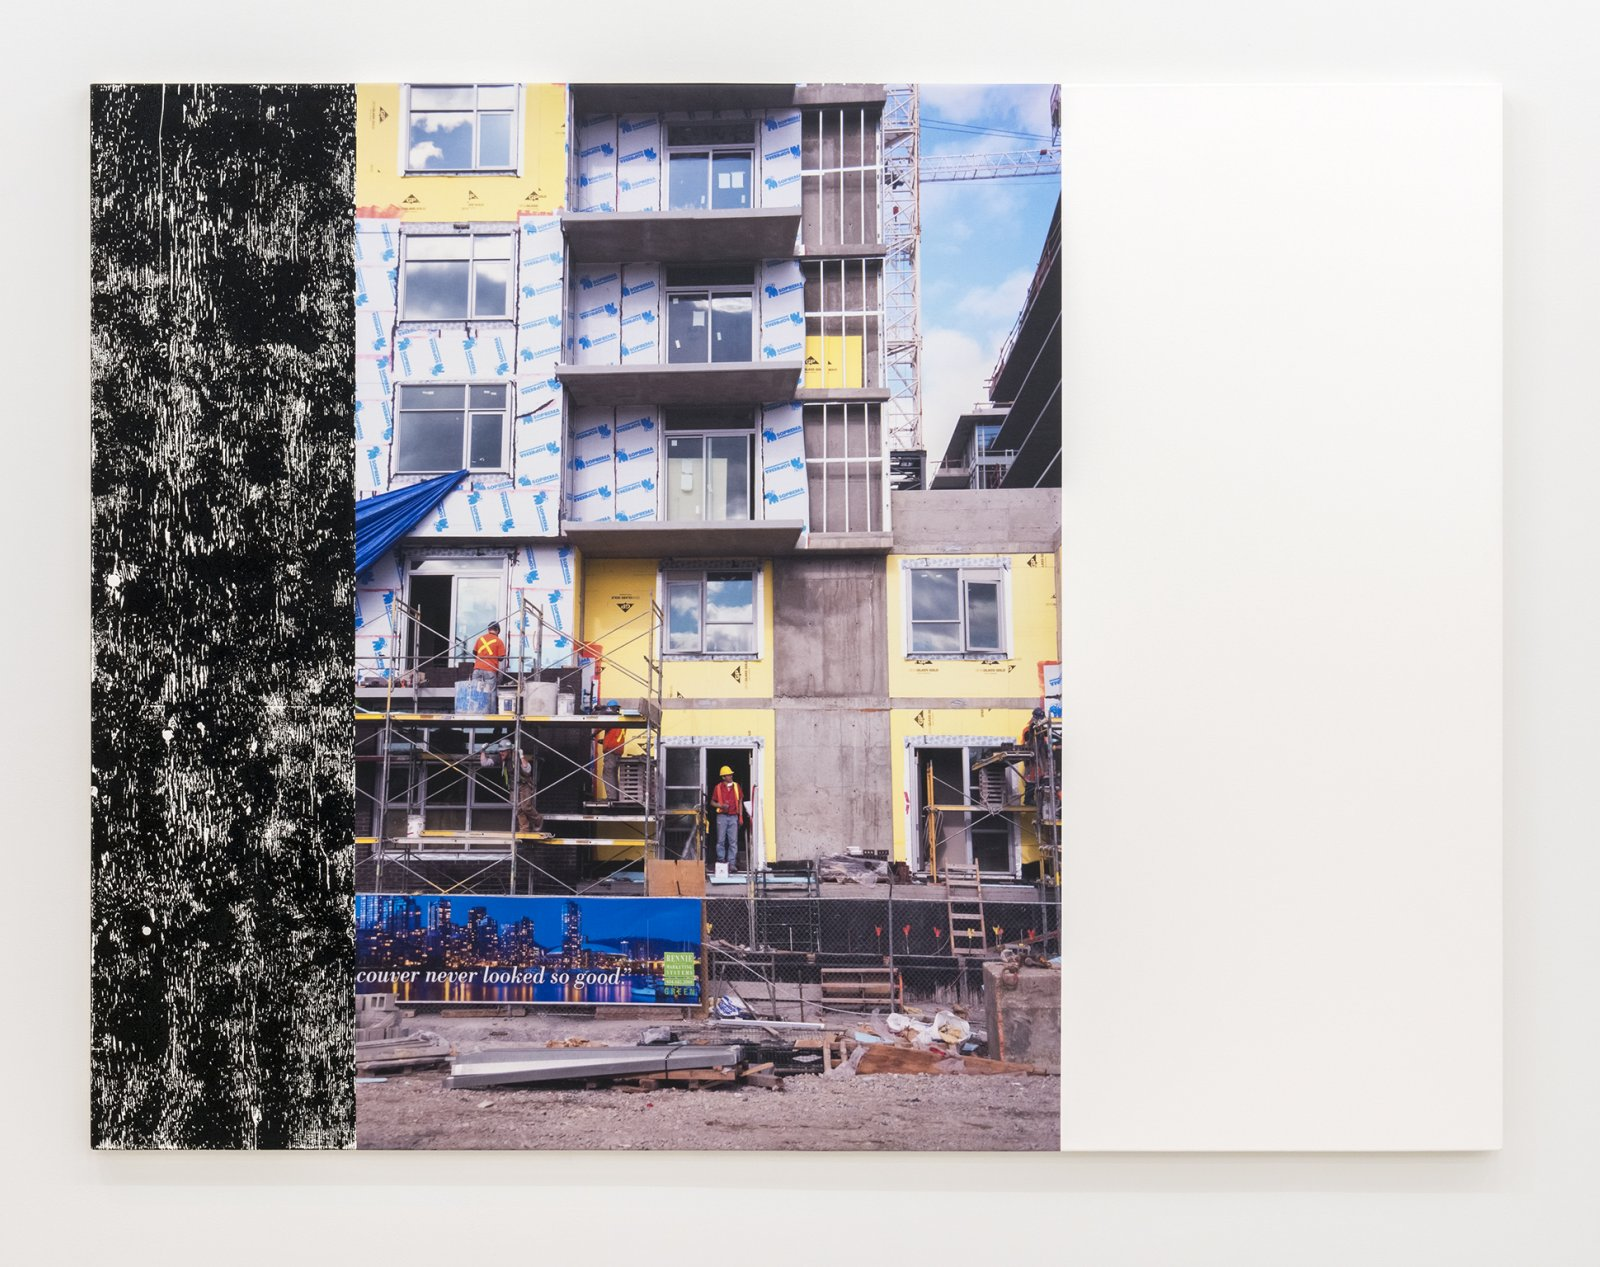 Ian Wallace, Construction Site (Olympic Village) III, 2011, photolaminate and acrylic on canvas, 72 x 96 in. (183 x 244 cm) by Ian Wallace